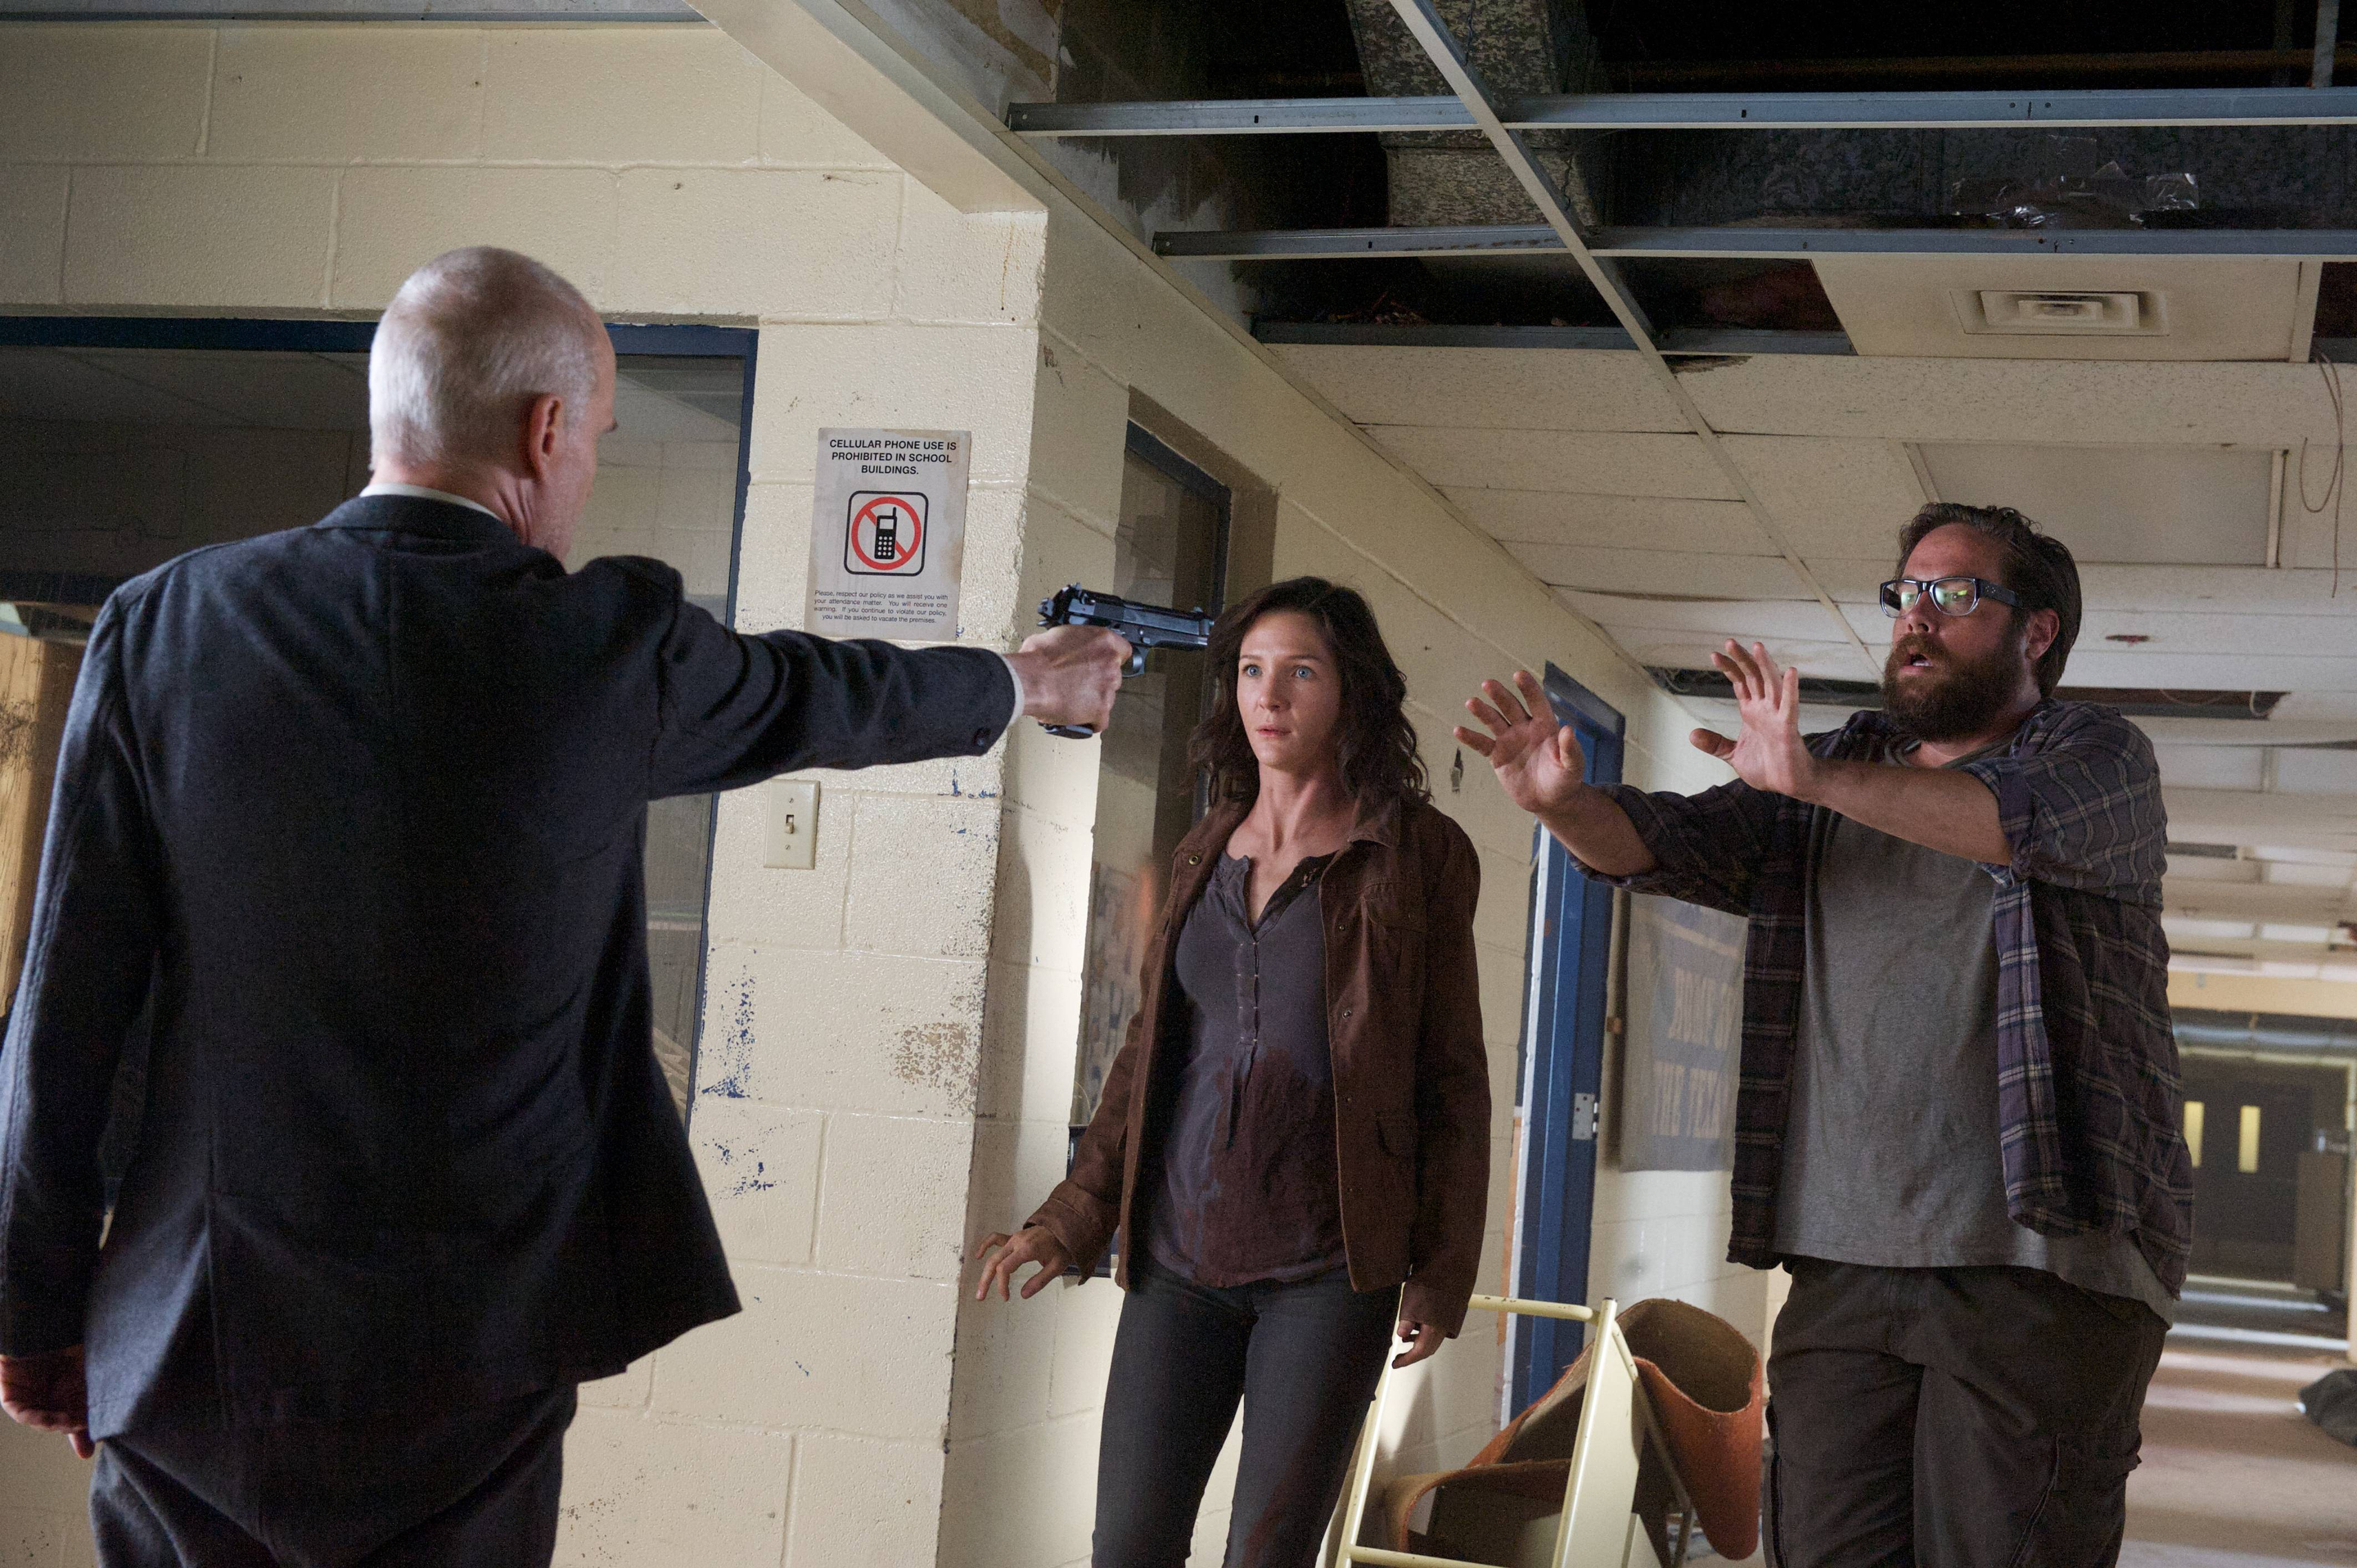 """Revolution - """"Everyone Says I Love You"""" - Dr. Horn with gun on Aaron and Cynthia"""